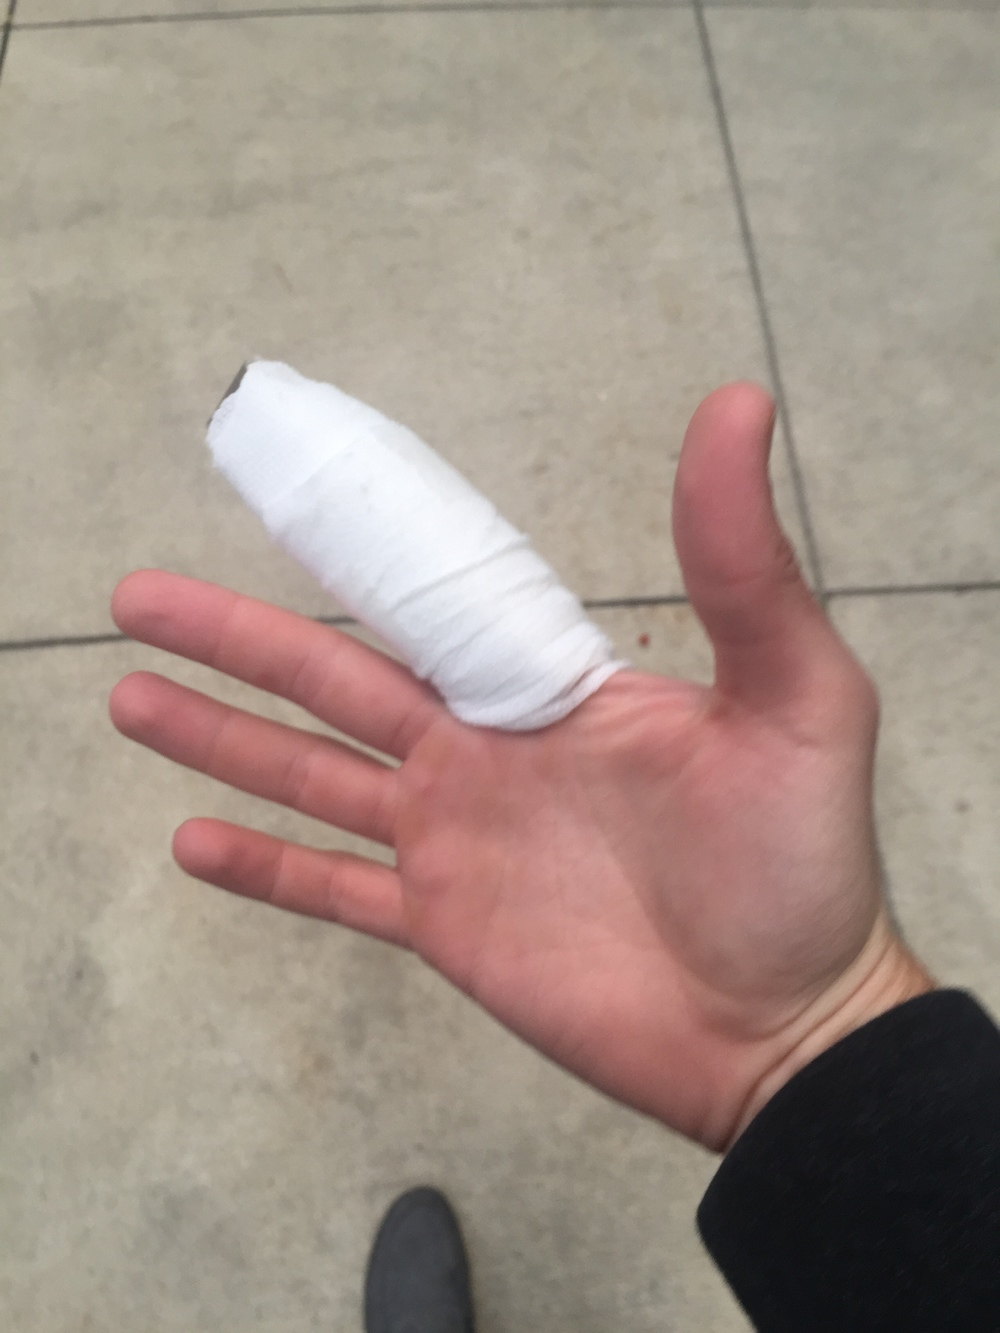 Broken finger, broken dreams